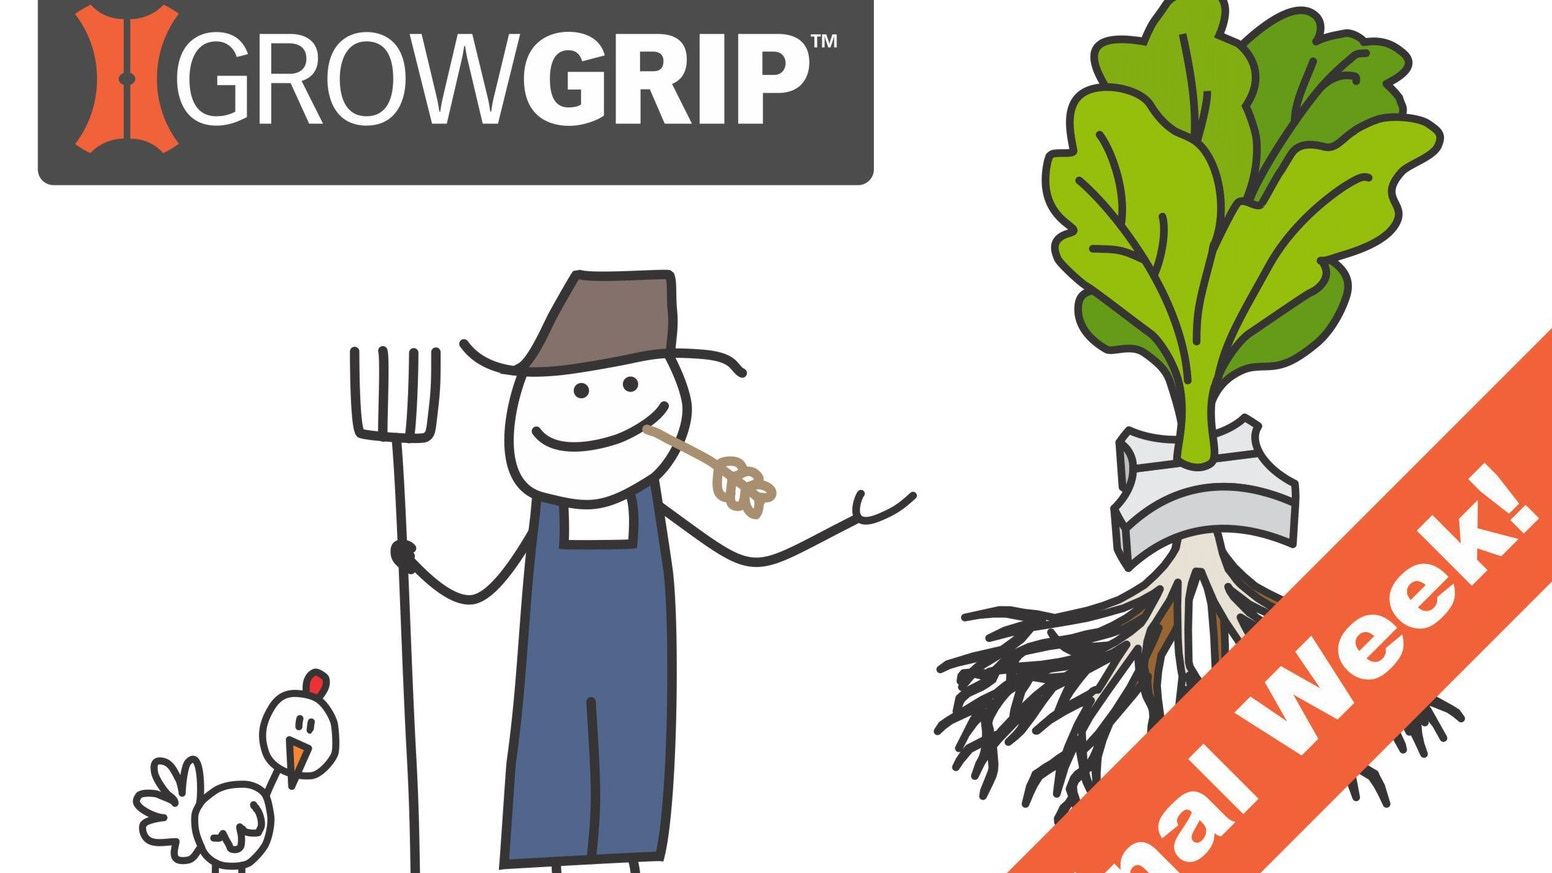 Save time and money by using GrowGrip reusable plant holders in your hydroponic or aquaponic raft beds!